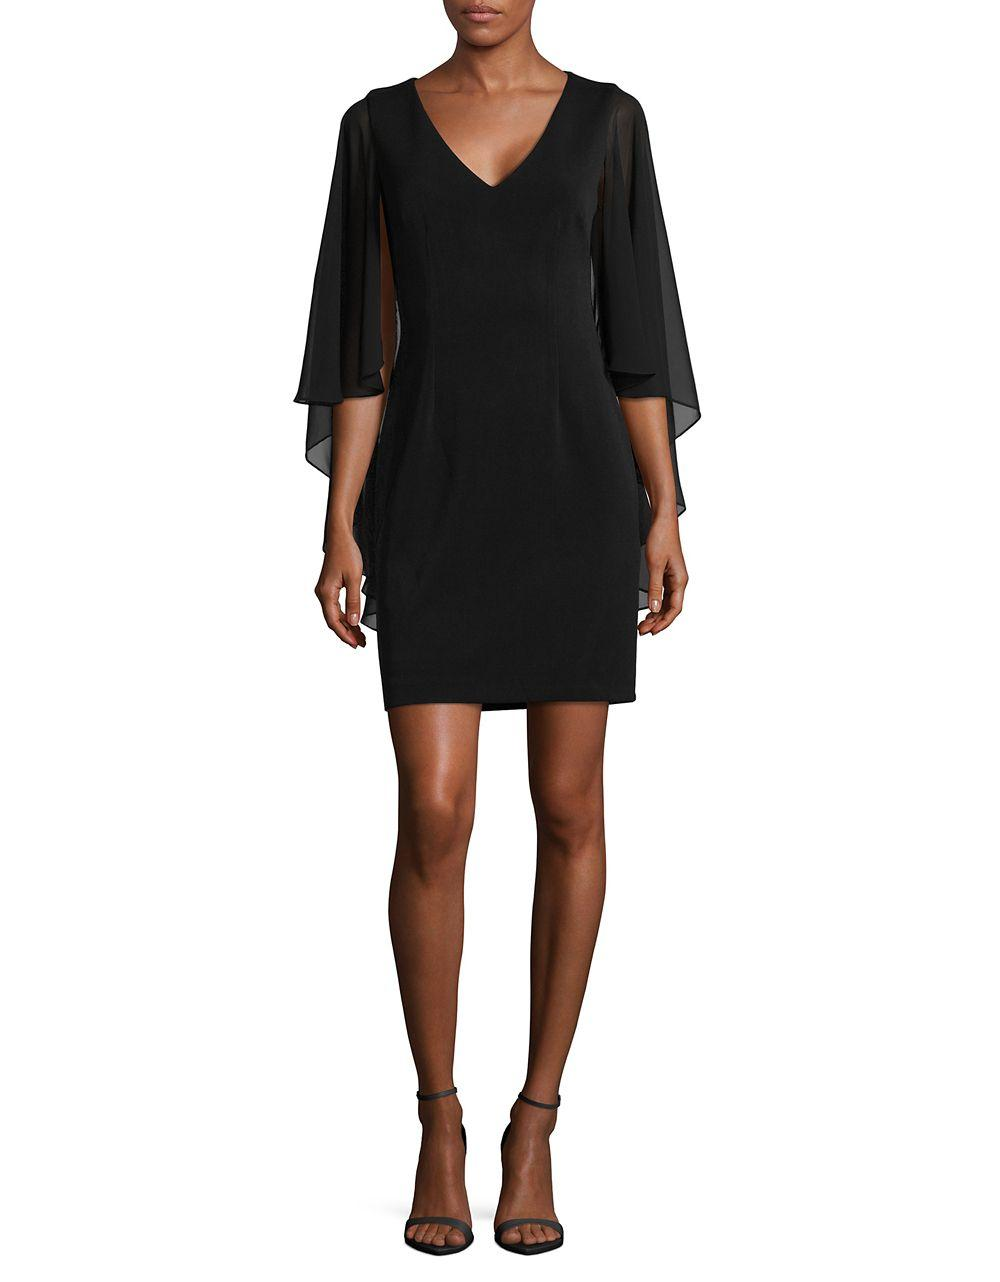 Vince Camuto Sheer Formal Dress In Black Lyst